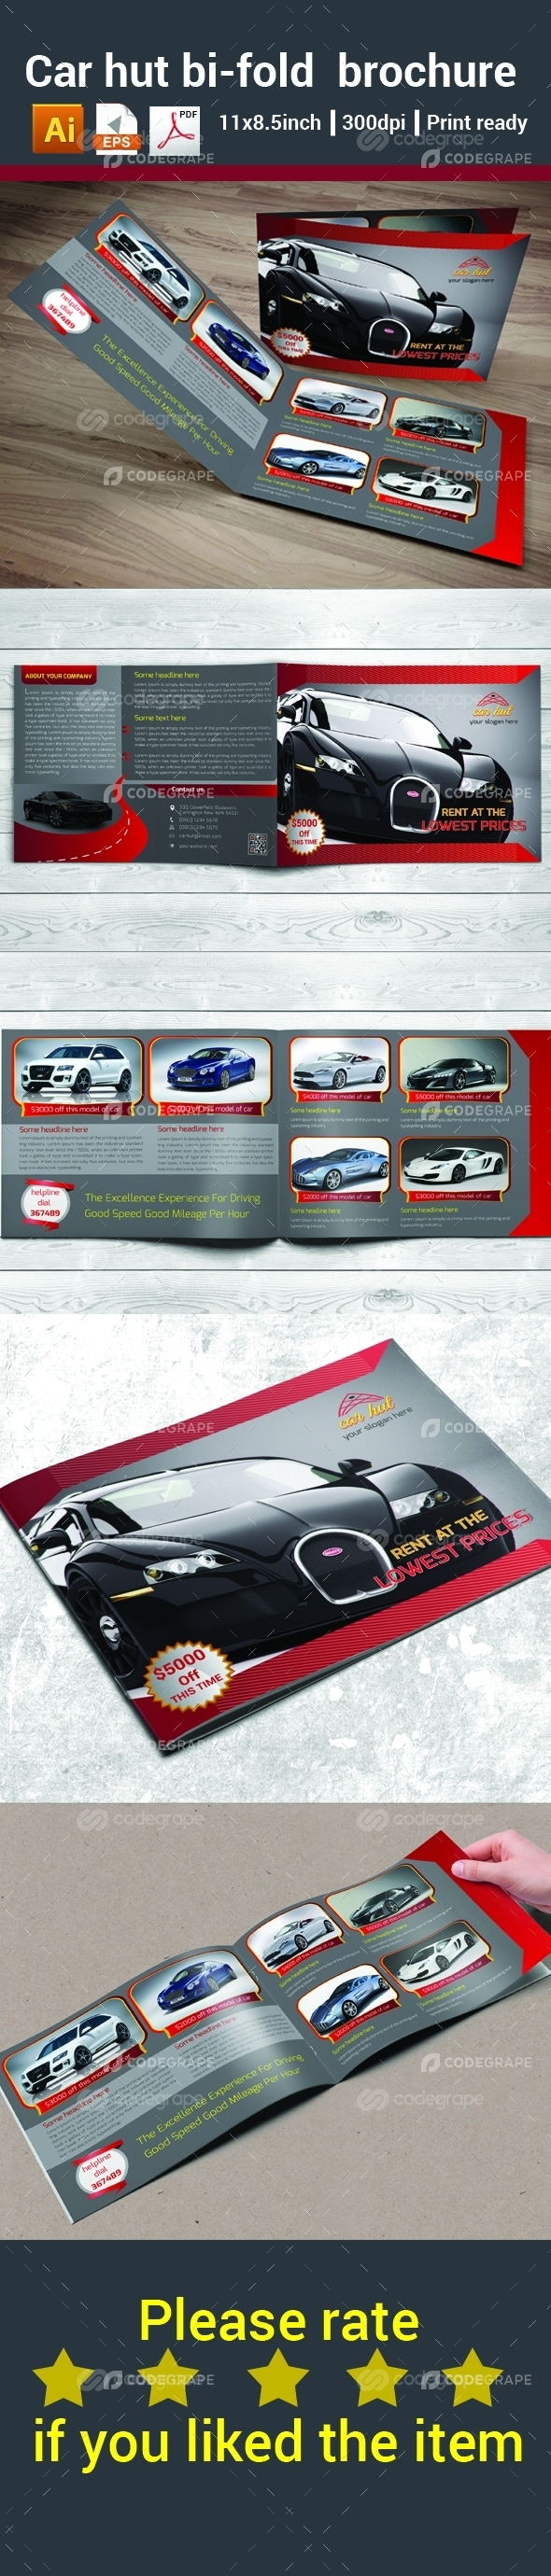 Car Hut Bi-fold Brochure